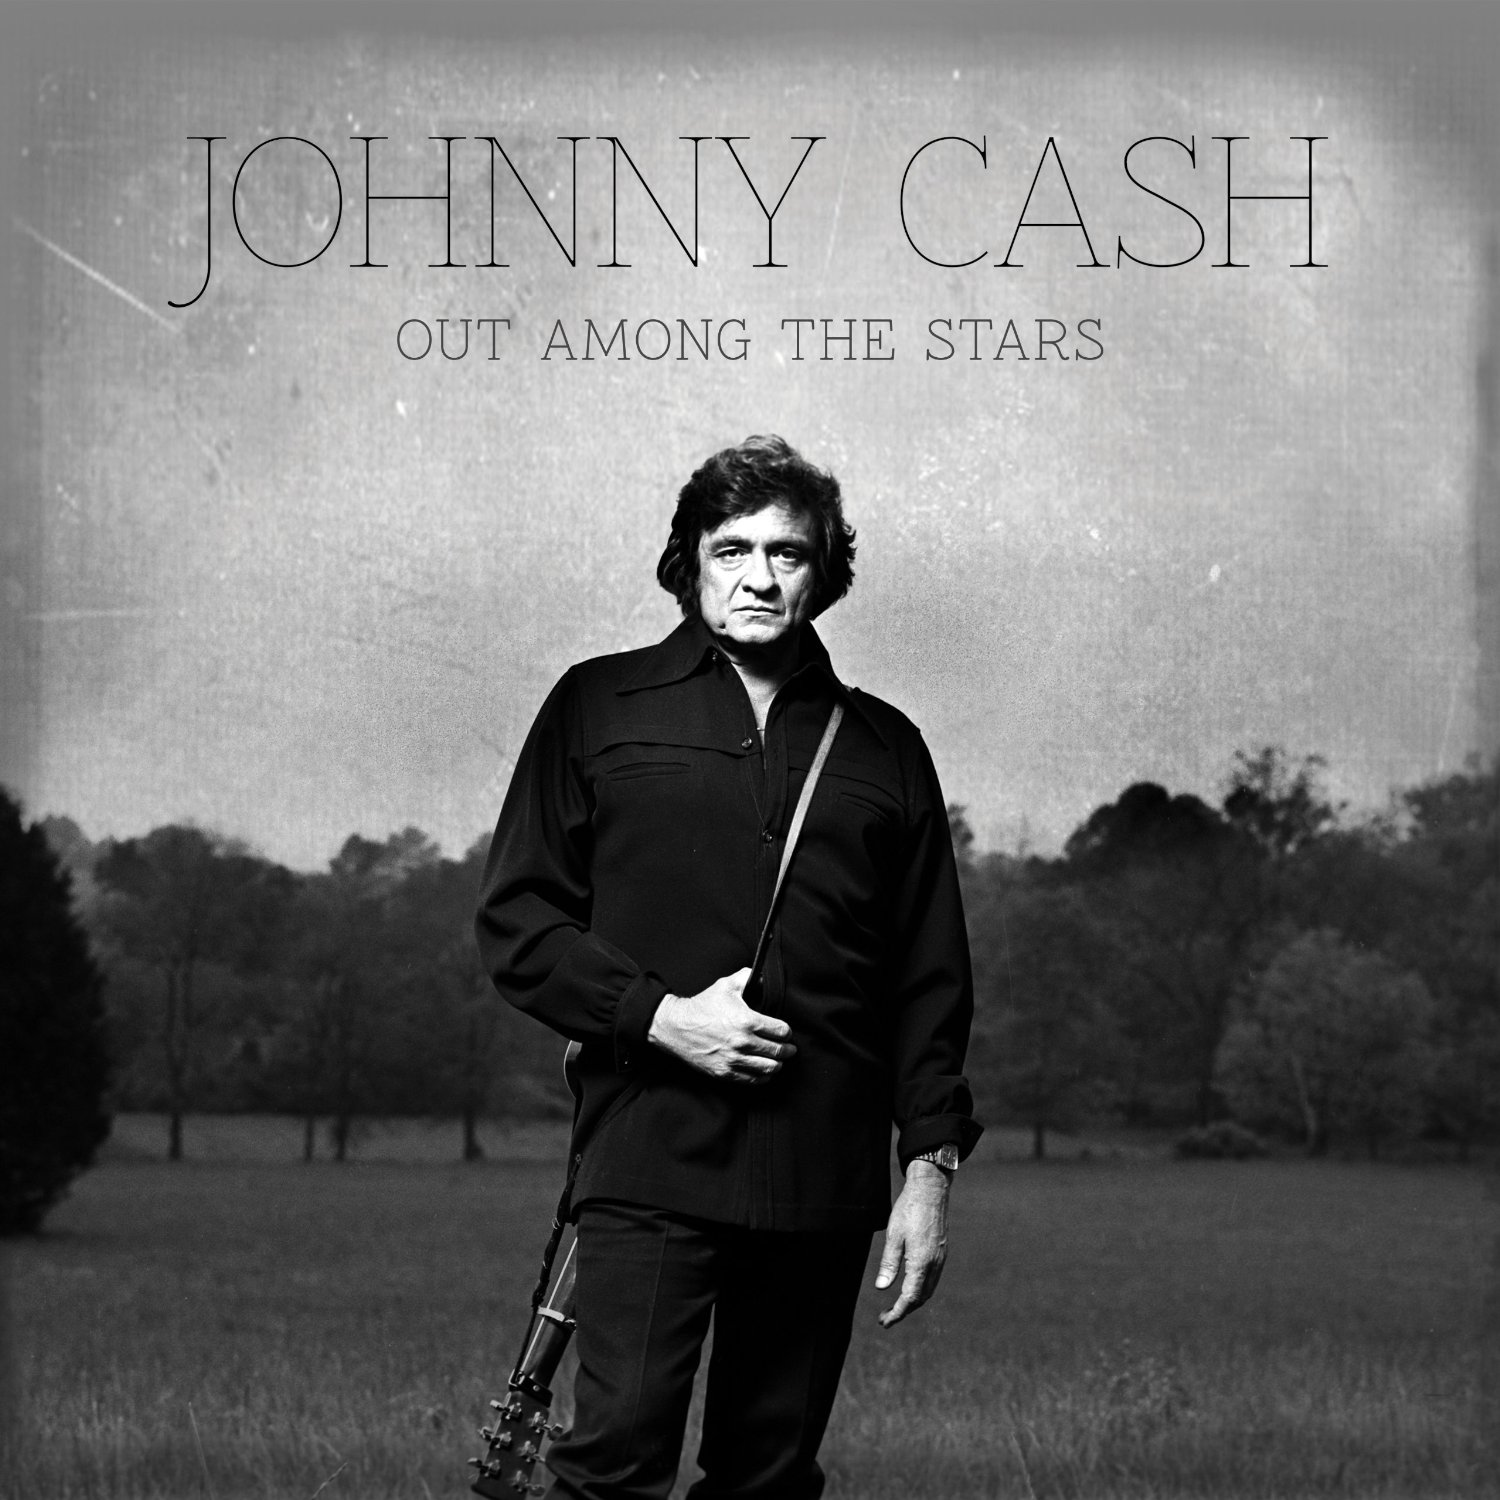 out-among-the-stars-johnny-cash